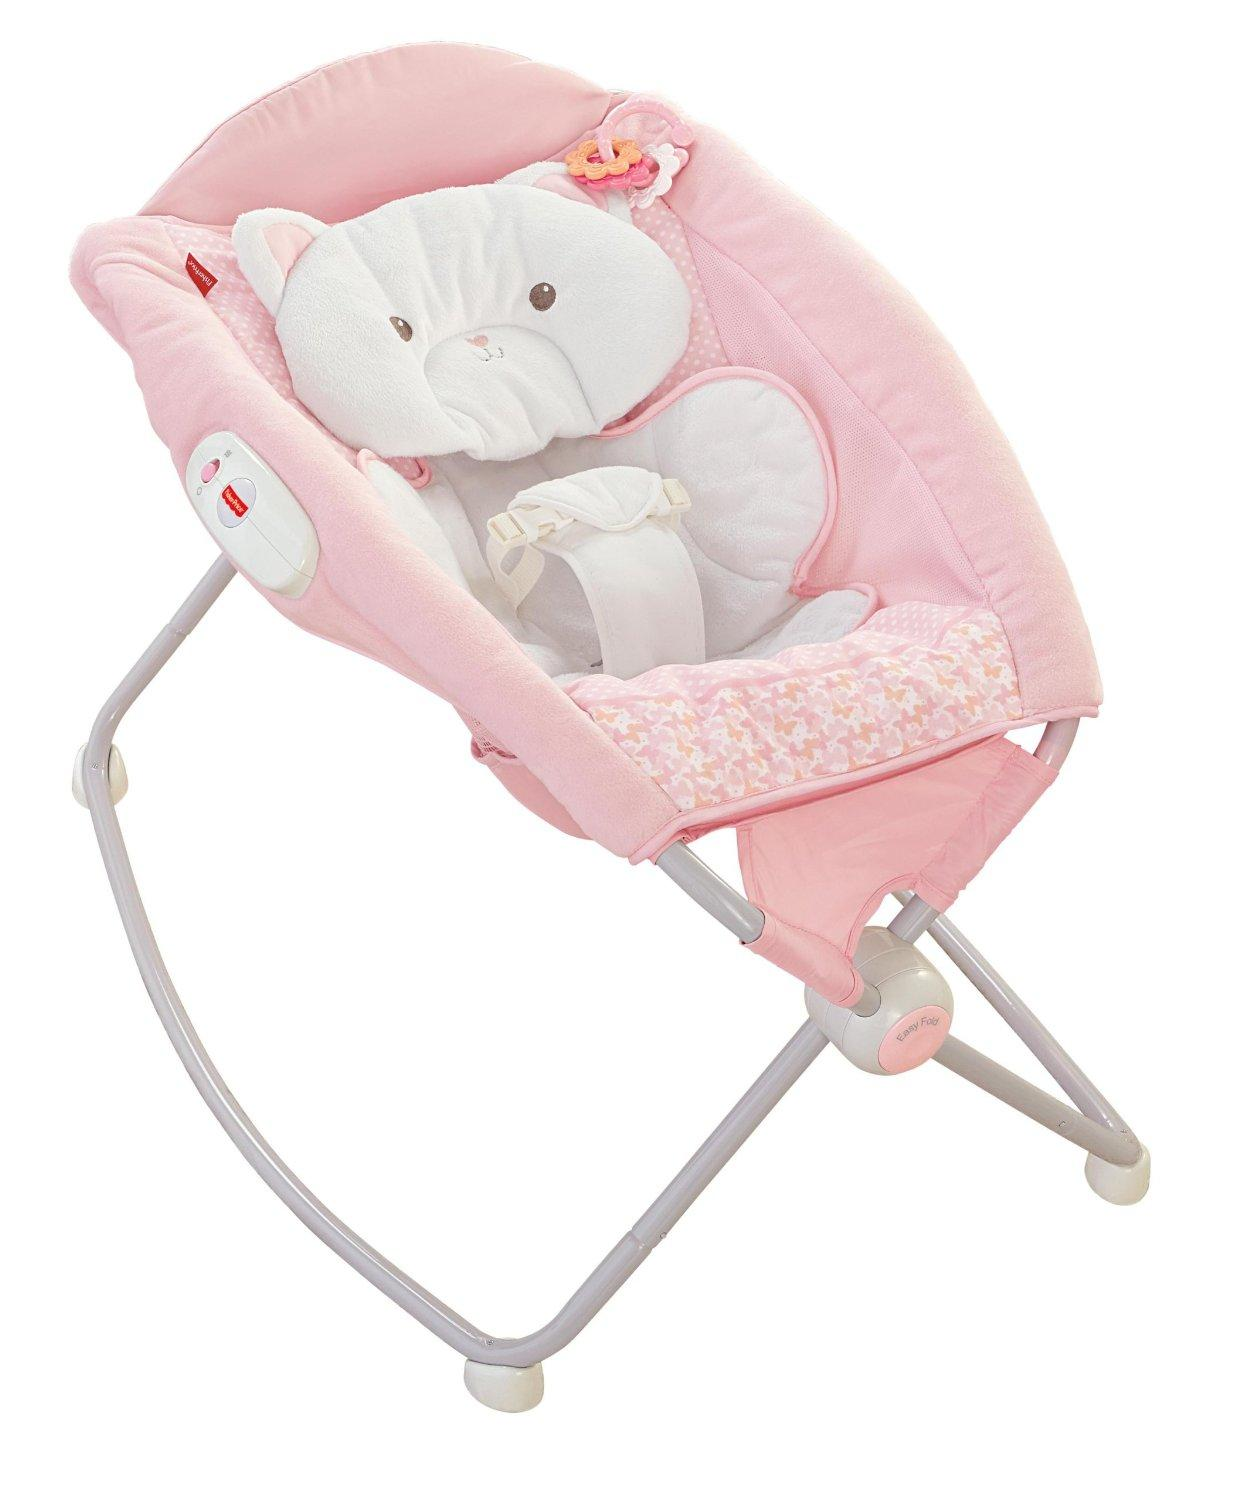 baby sleeper chair how to slipcover a amazon fisher price my little snugakitty deluxe rock